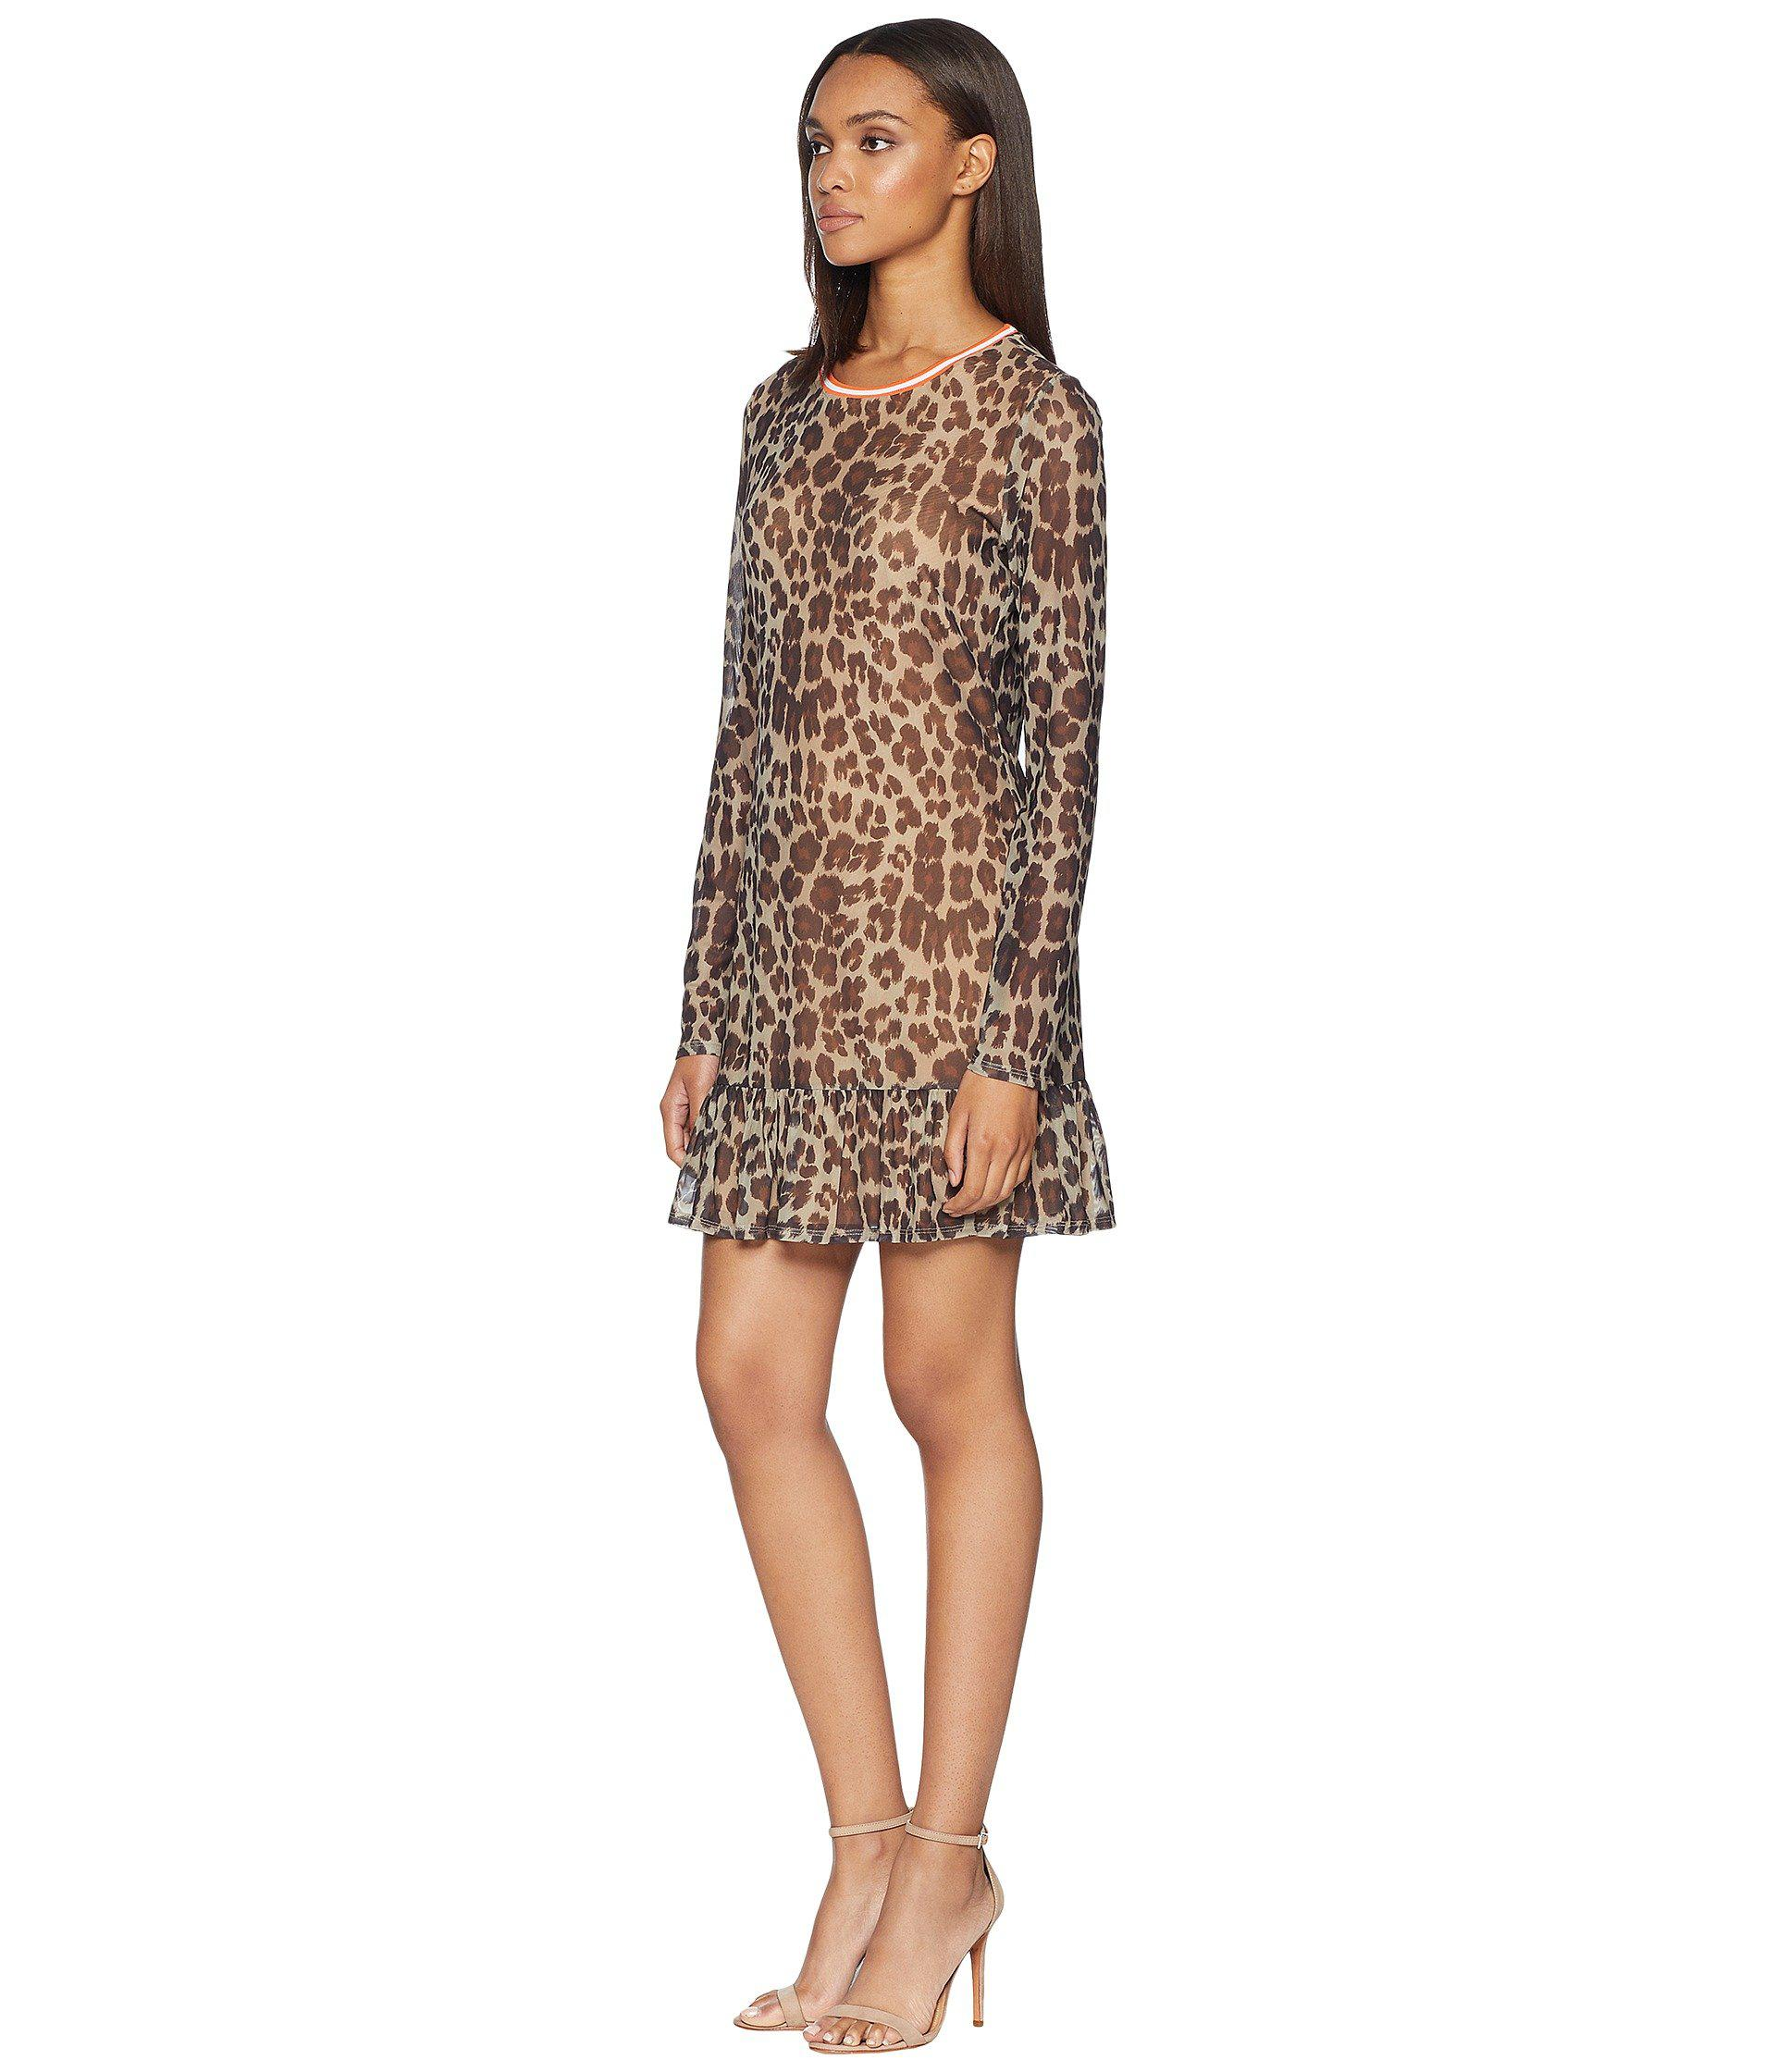 138a5bce91 Lyst - Juicy Couture Leopard Print Drop Waist Bell Sleeve Dress in Brown